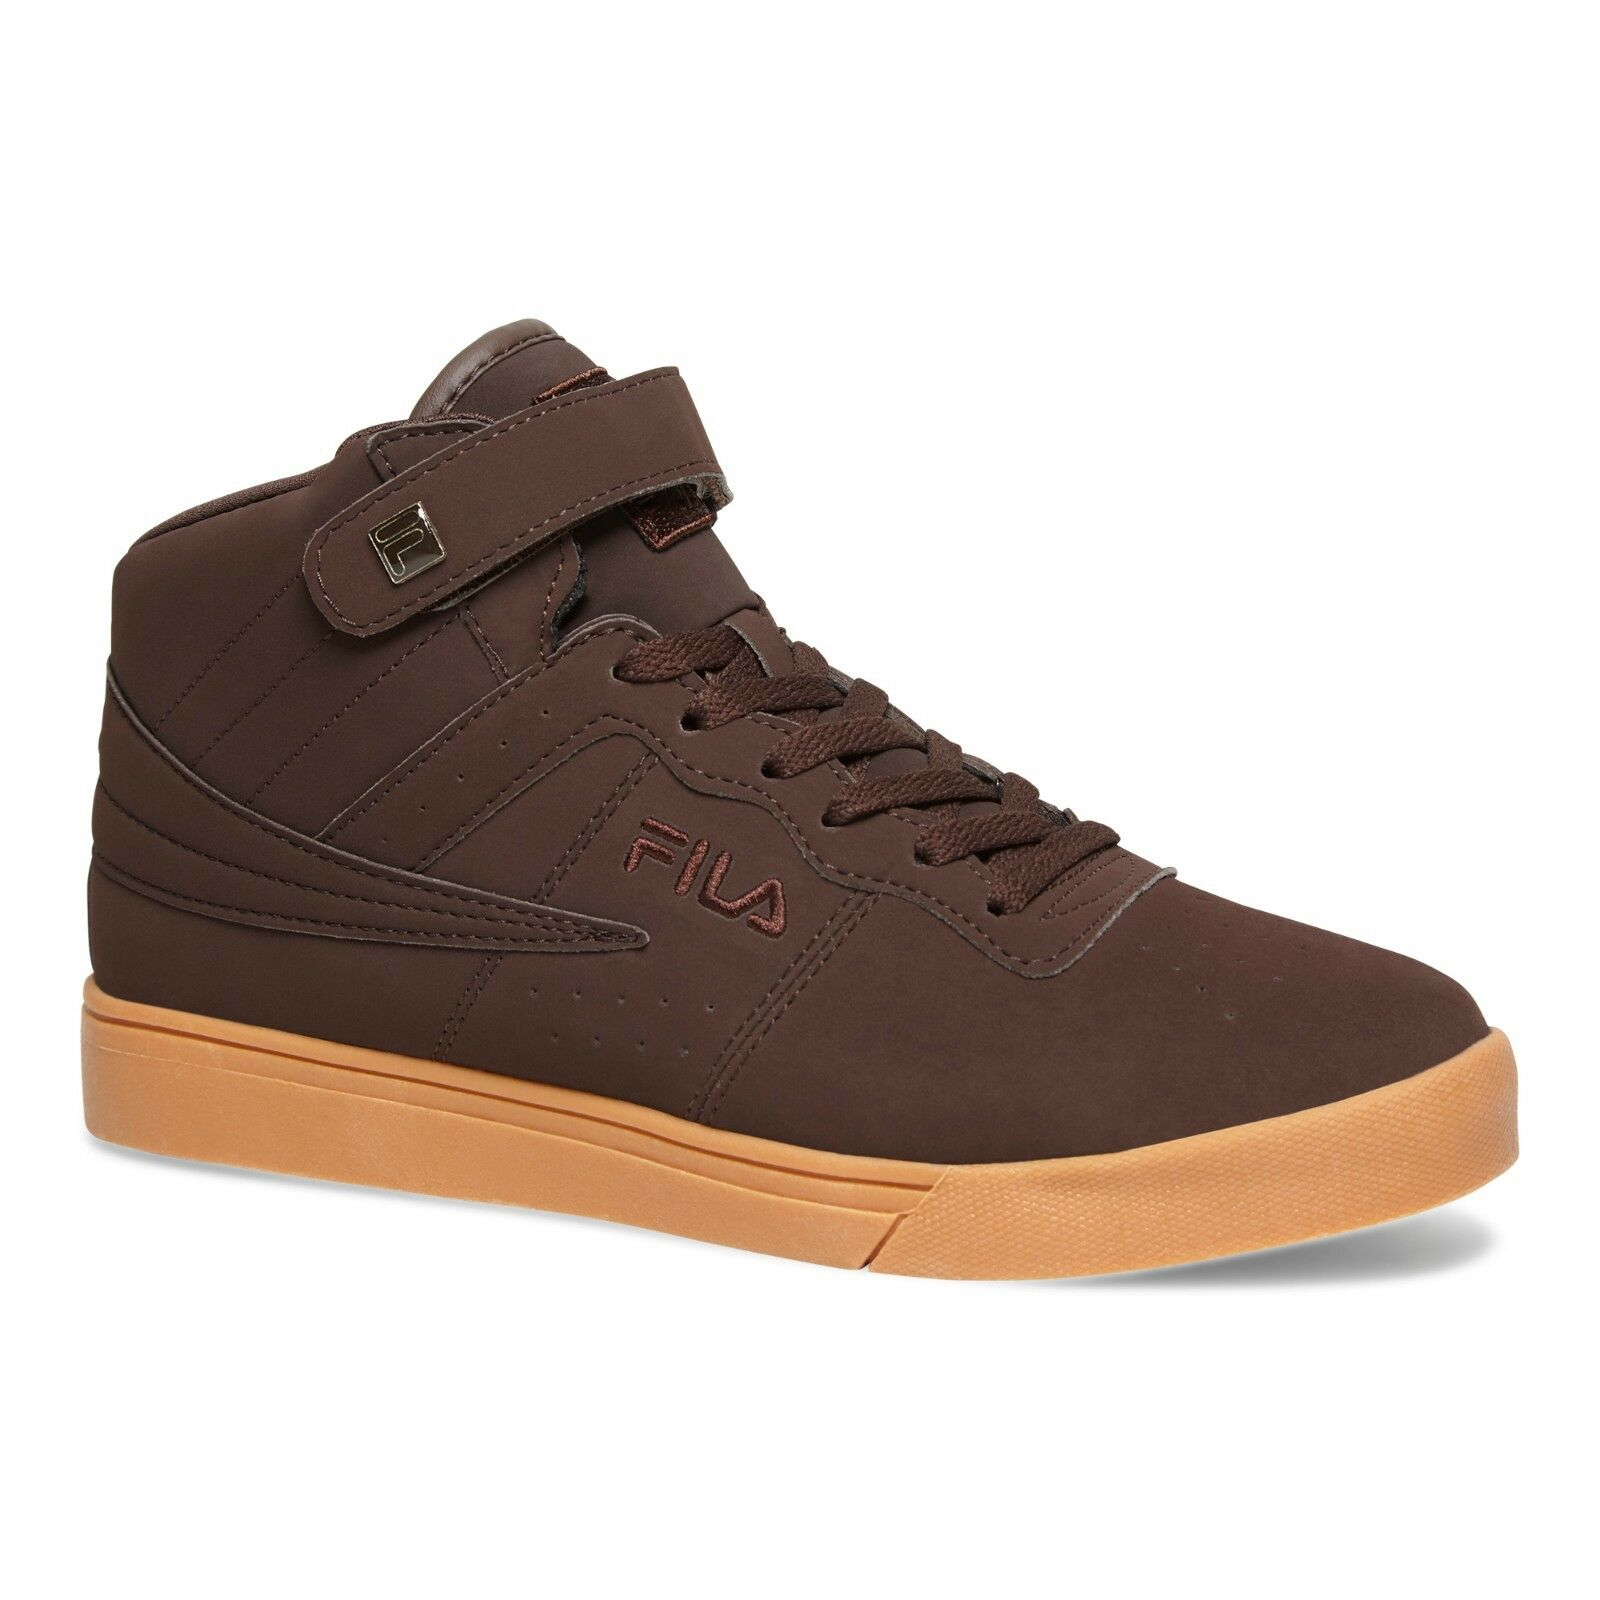 Fila Men's Vulc 13 MP All Brown with Gum Sole Casual shoes